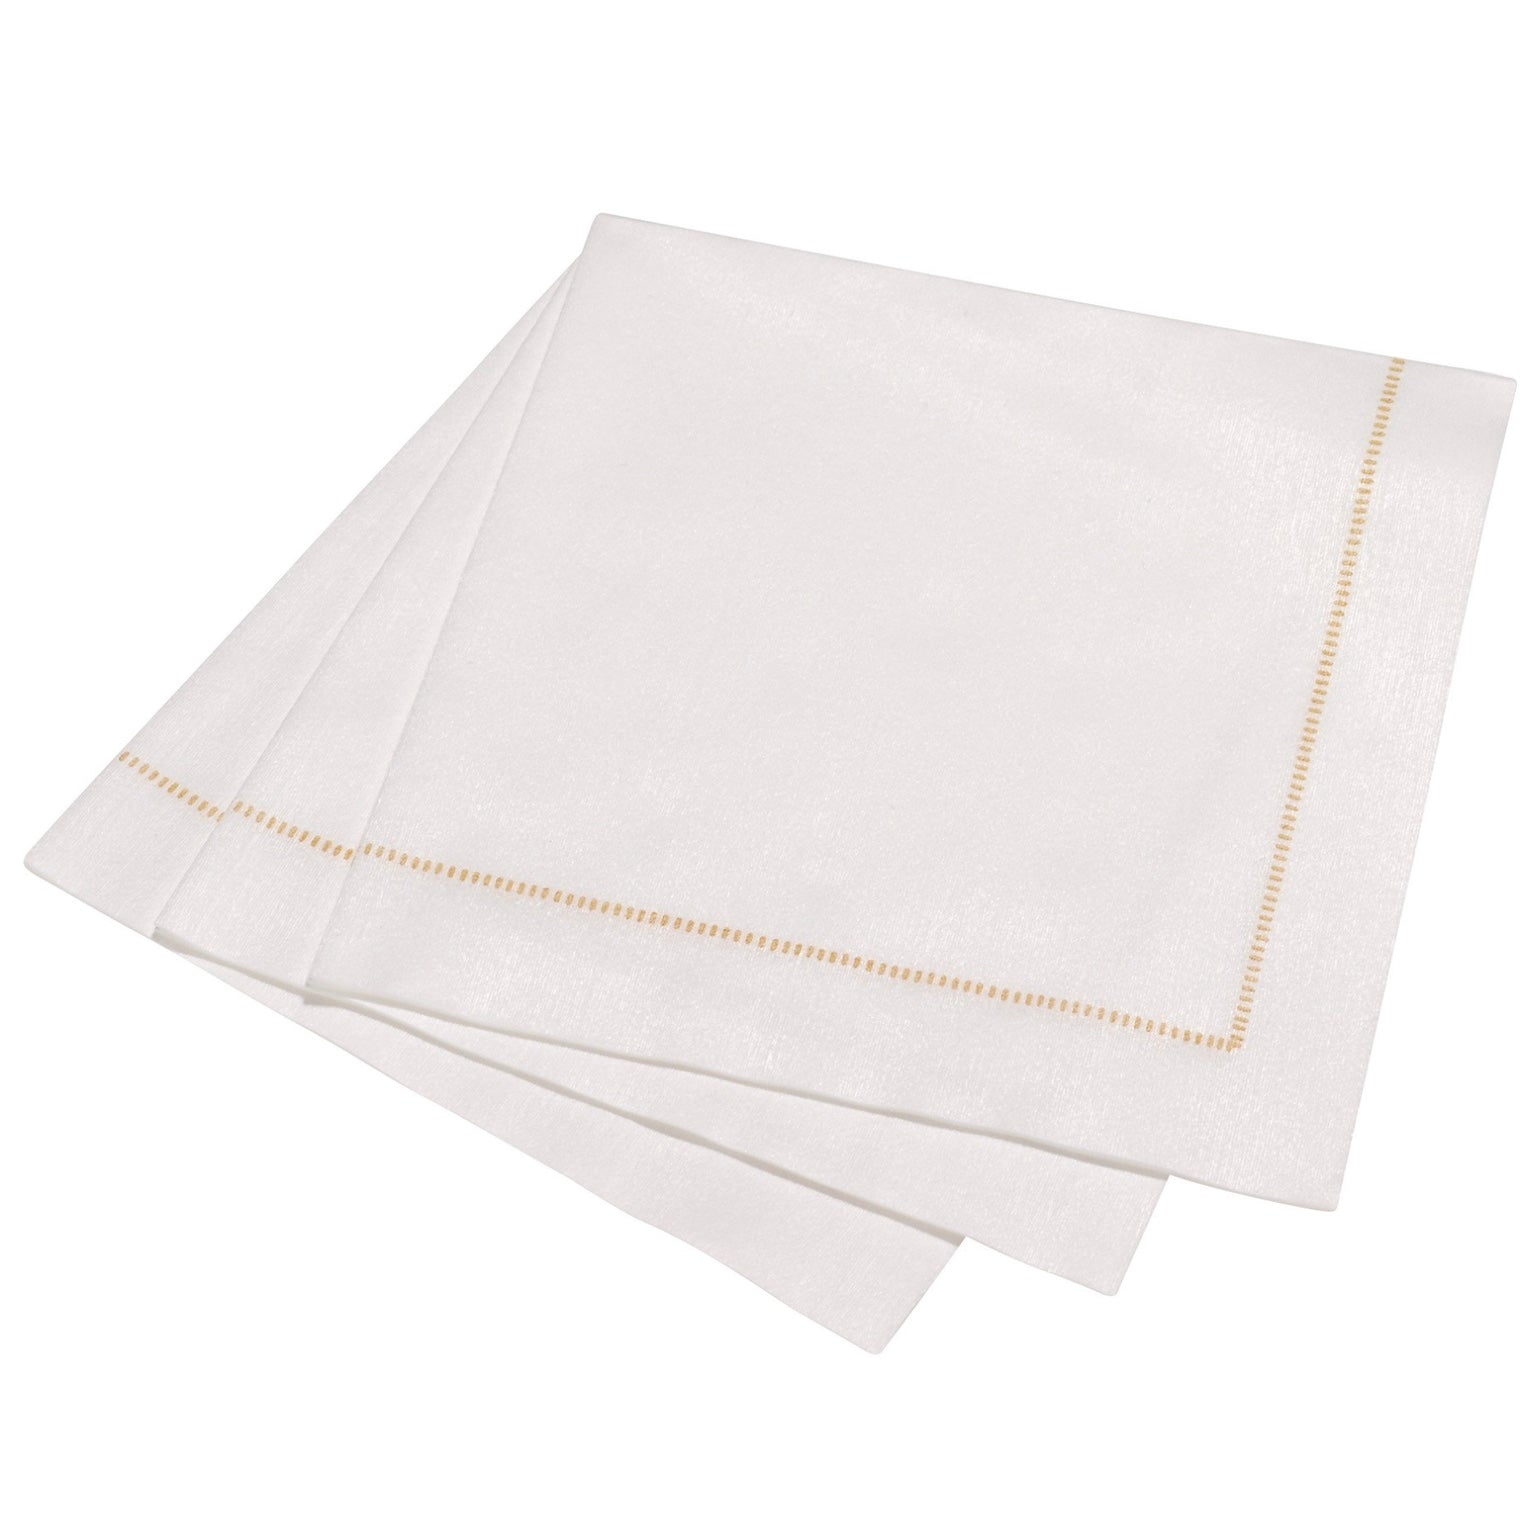 "The Napkins ""Hemstitch"" Cocktail White Gold 